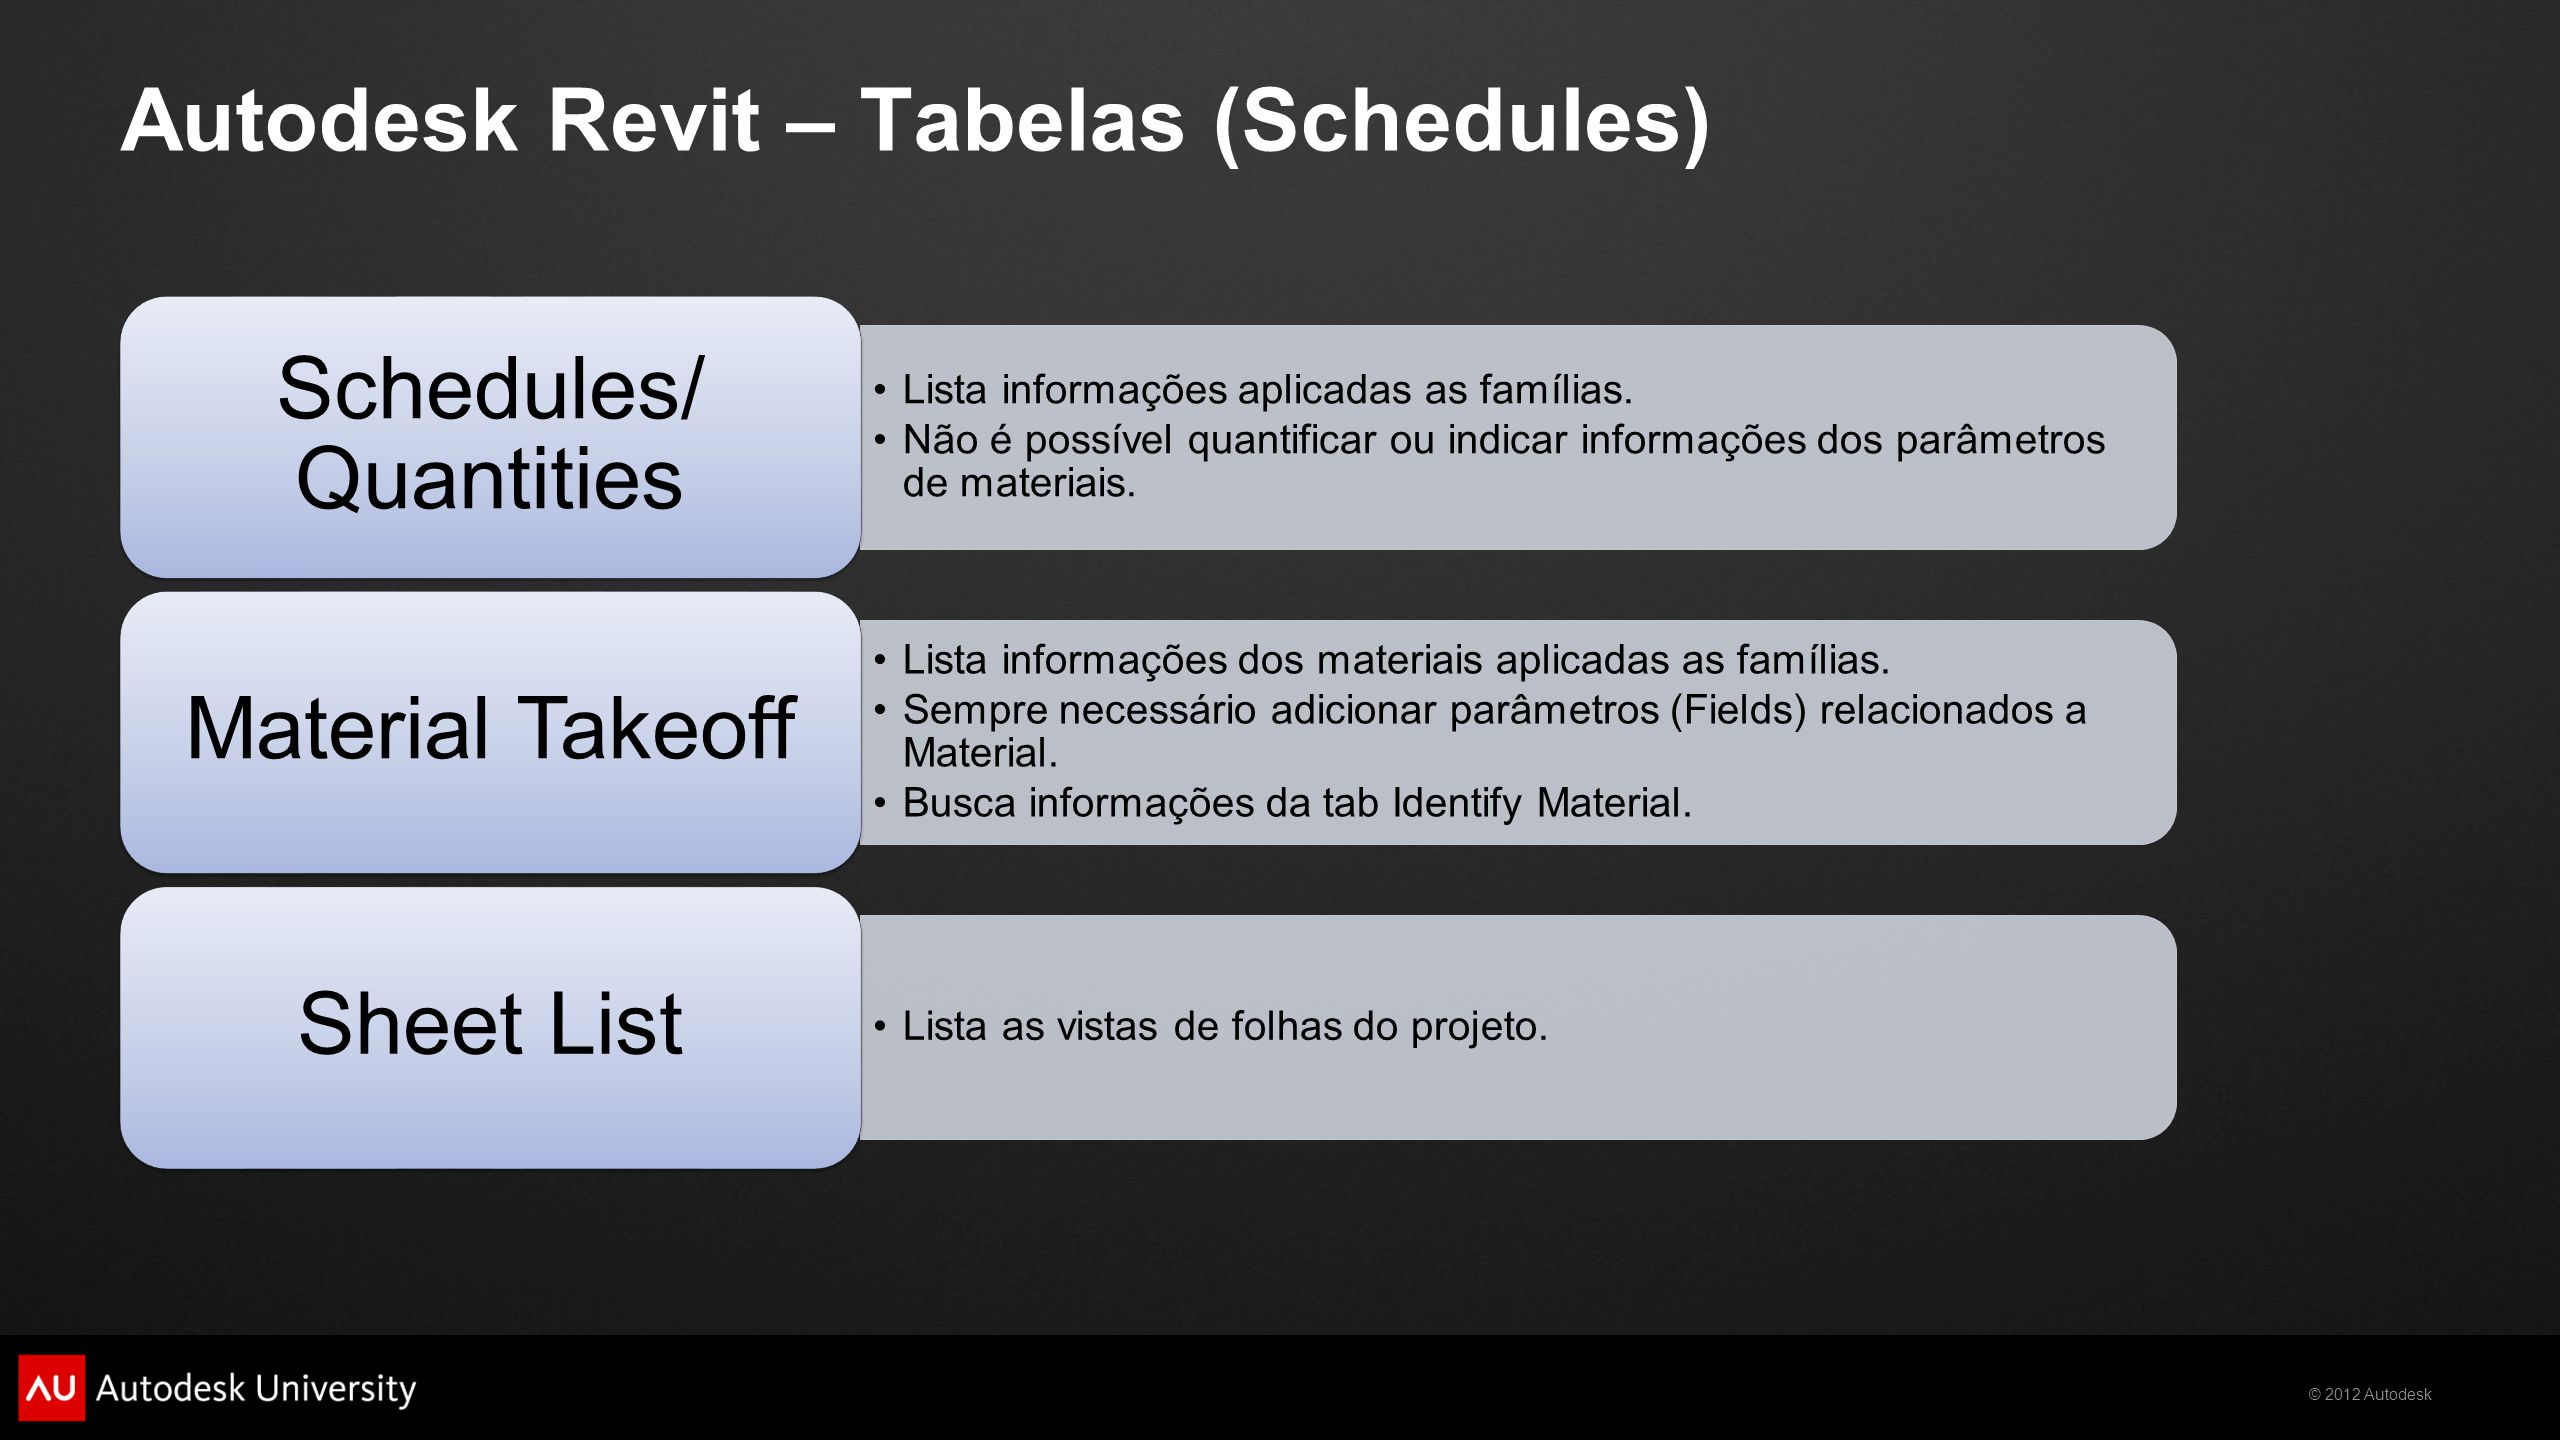 Autodesk Revit – Tabelas (Schedules)